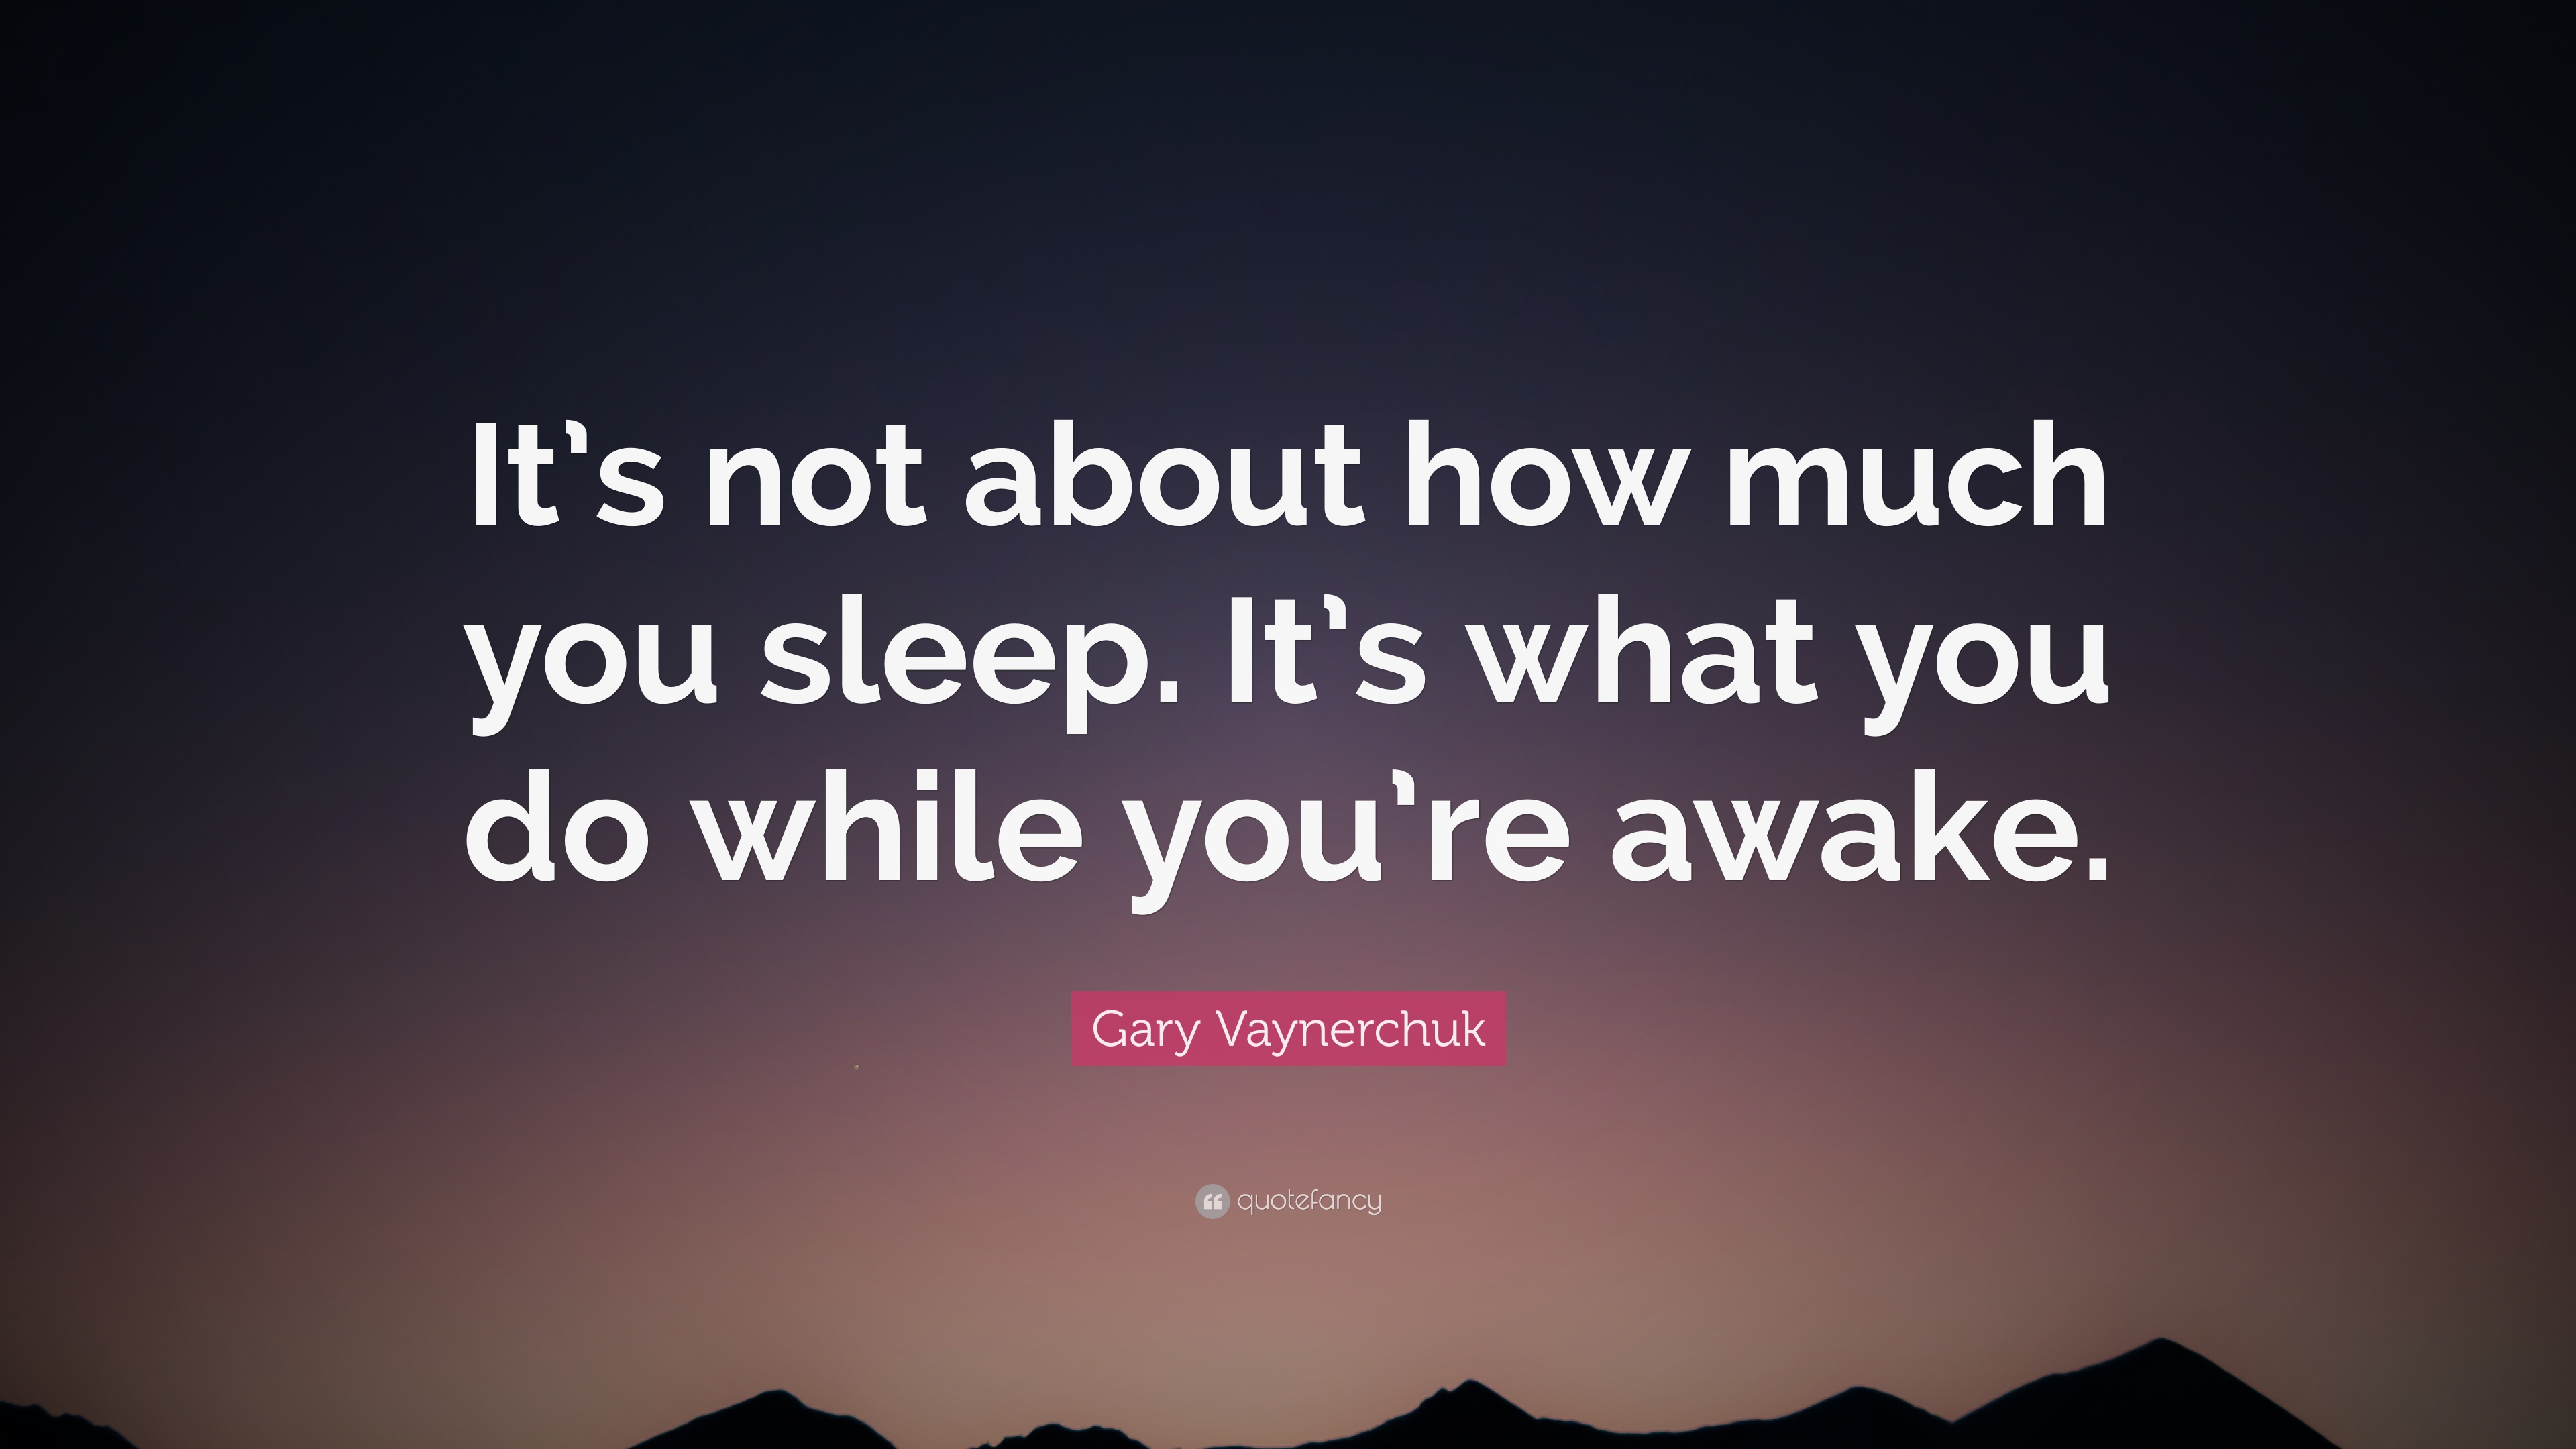 Quotes About Not Sleeping Sleep Quotes 40 Wallpapers  Quotefancy